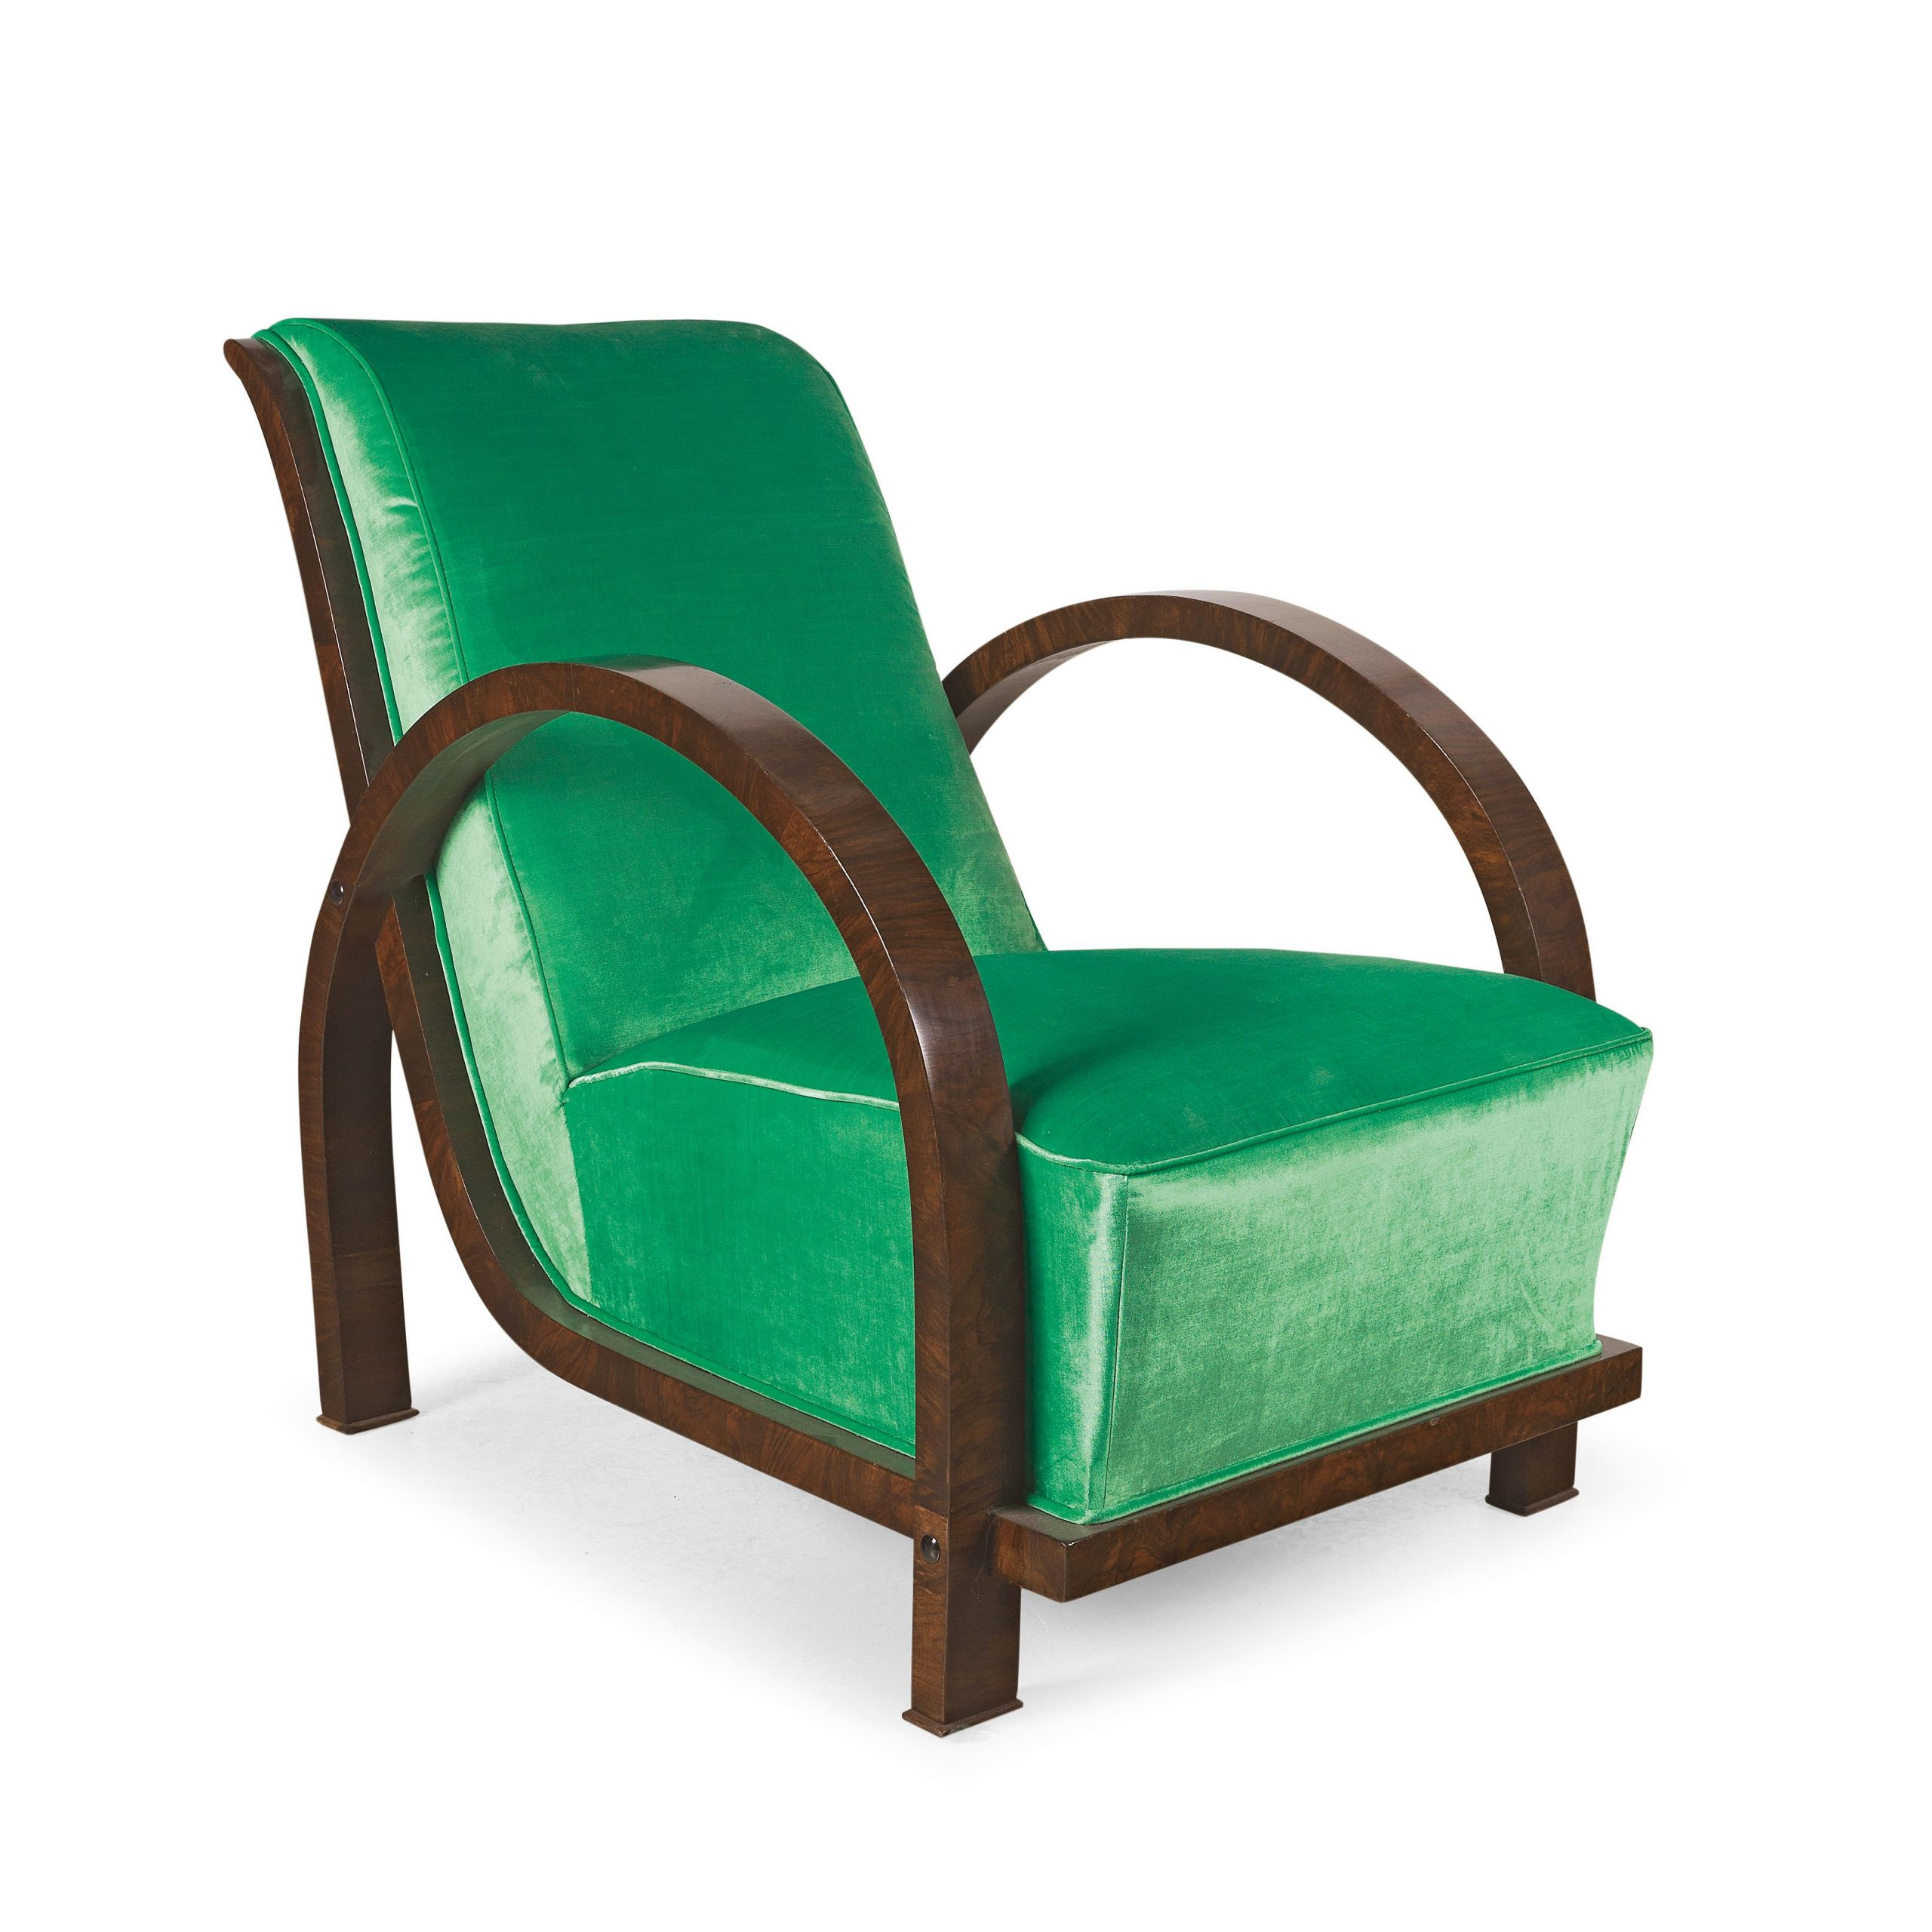 An Art Deco Armchair, – Furniture And Decorative Art 2019/03 In Autenberg Armchairs (View 10 of 15)